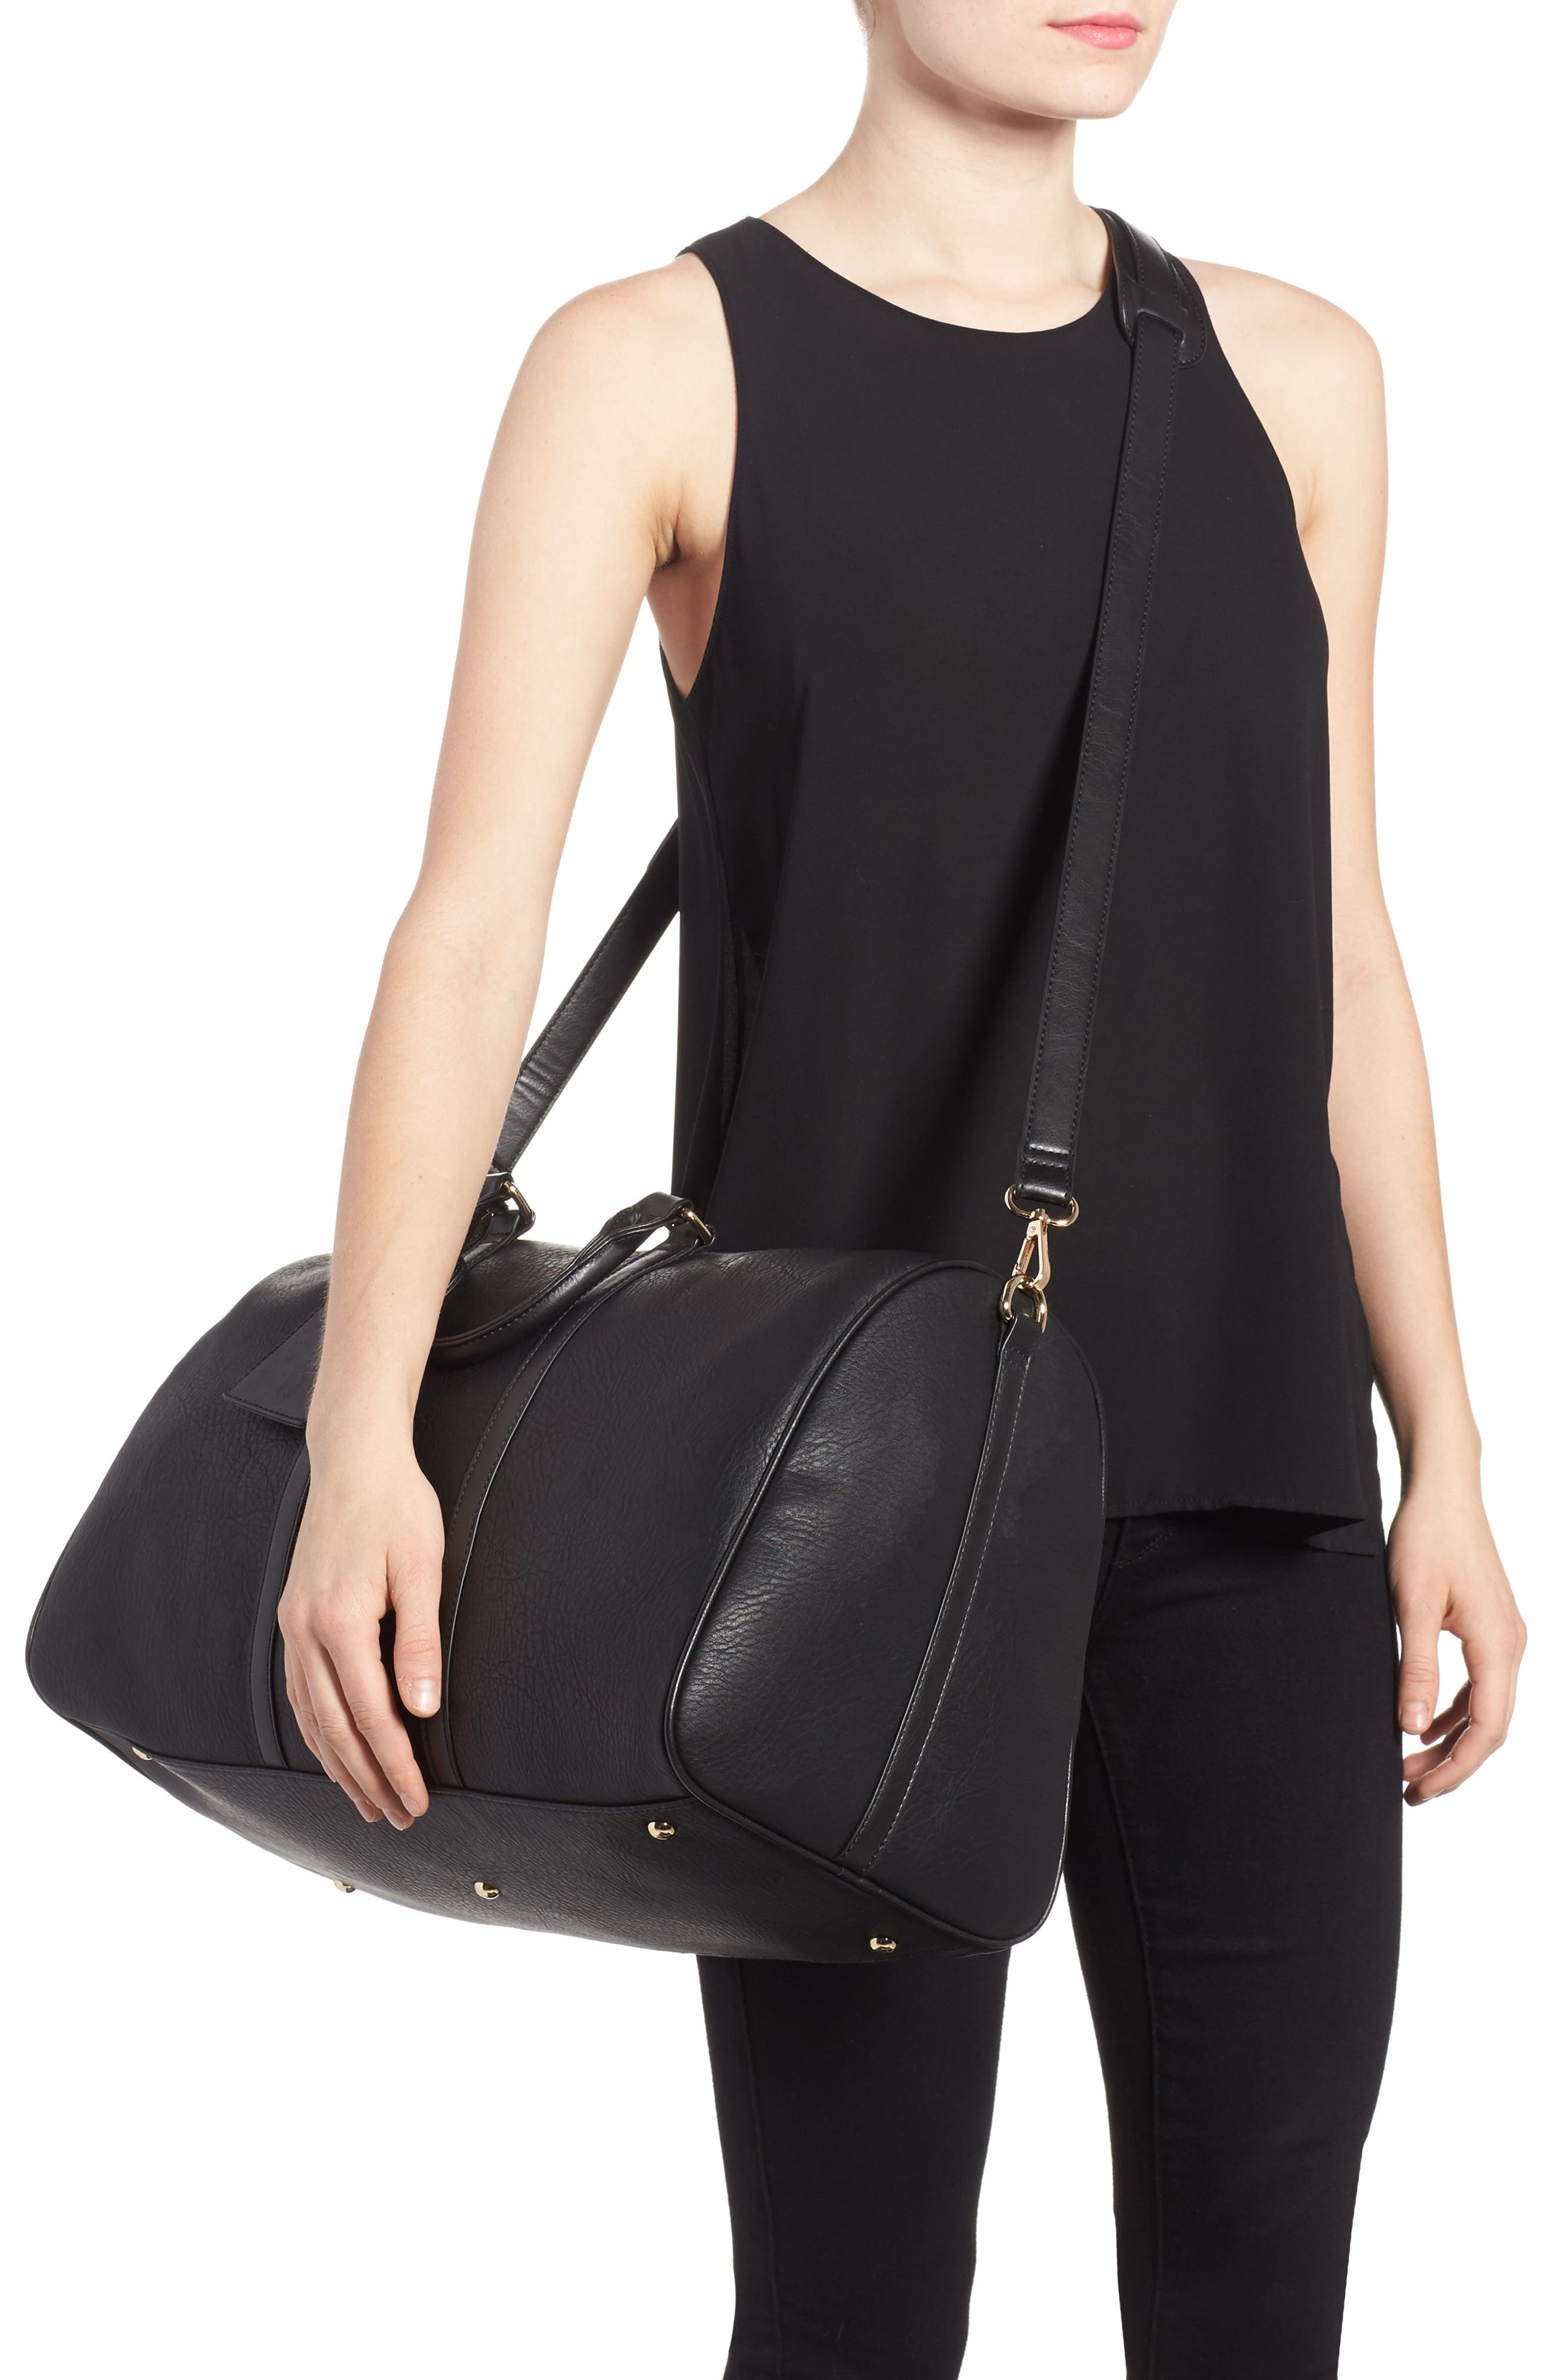 'Cassidy' Faux Leather Duffel Bag,                             Alternate thumbnail 2, color,                             002